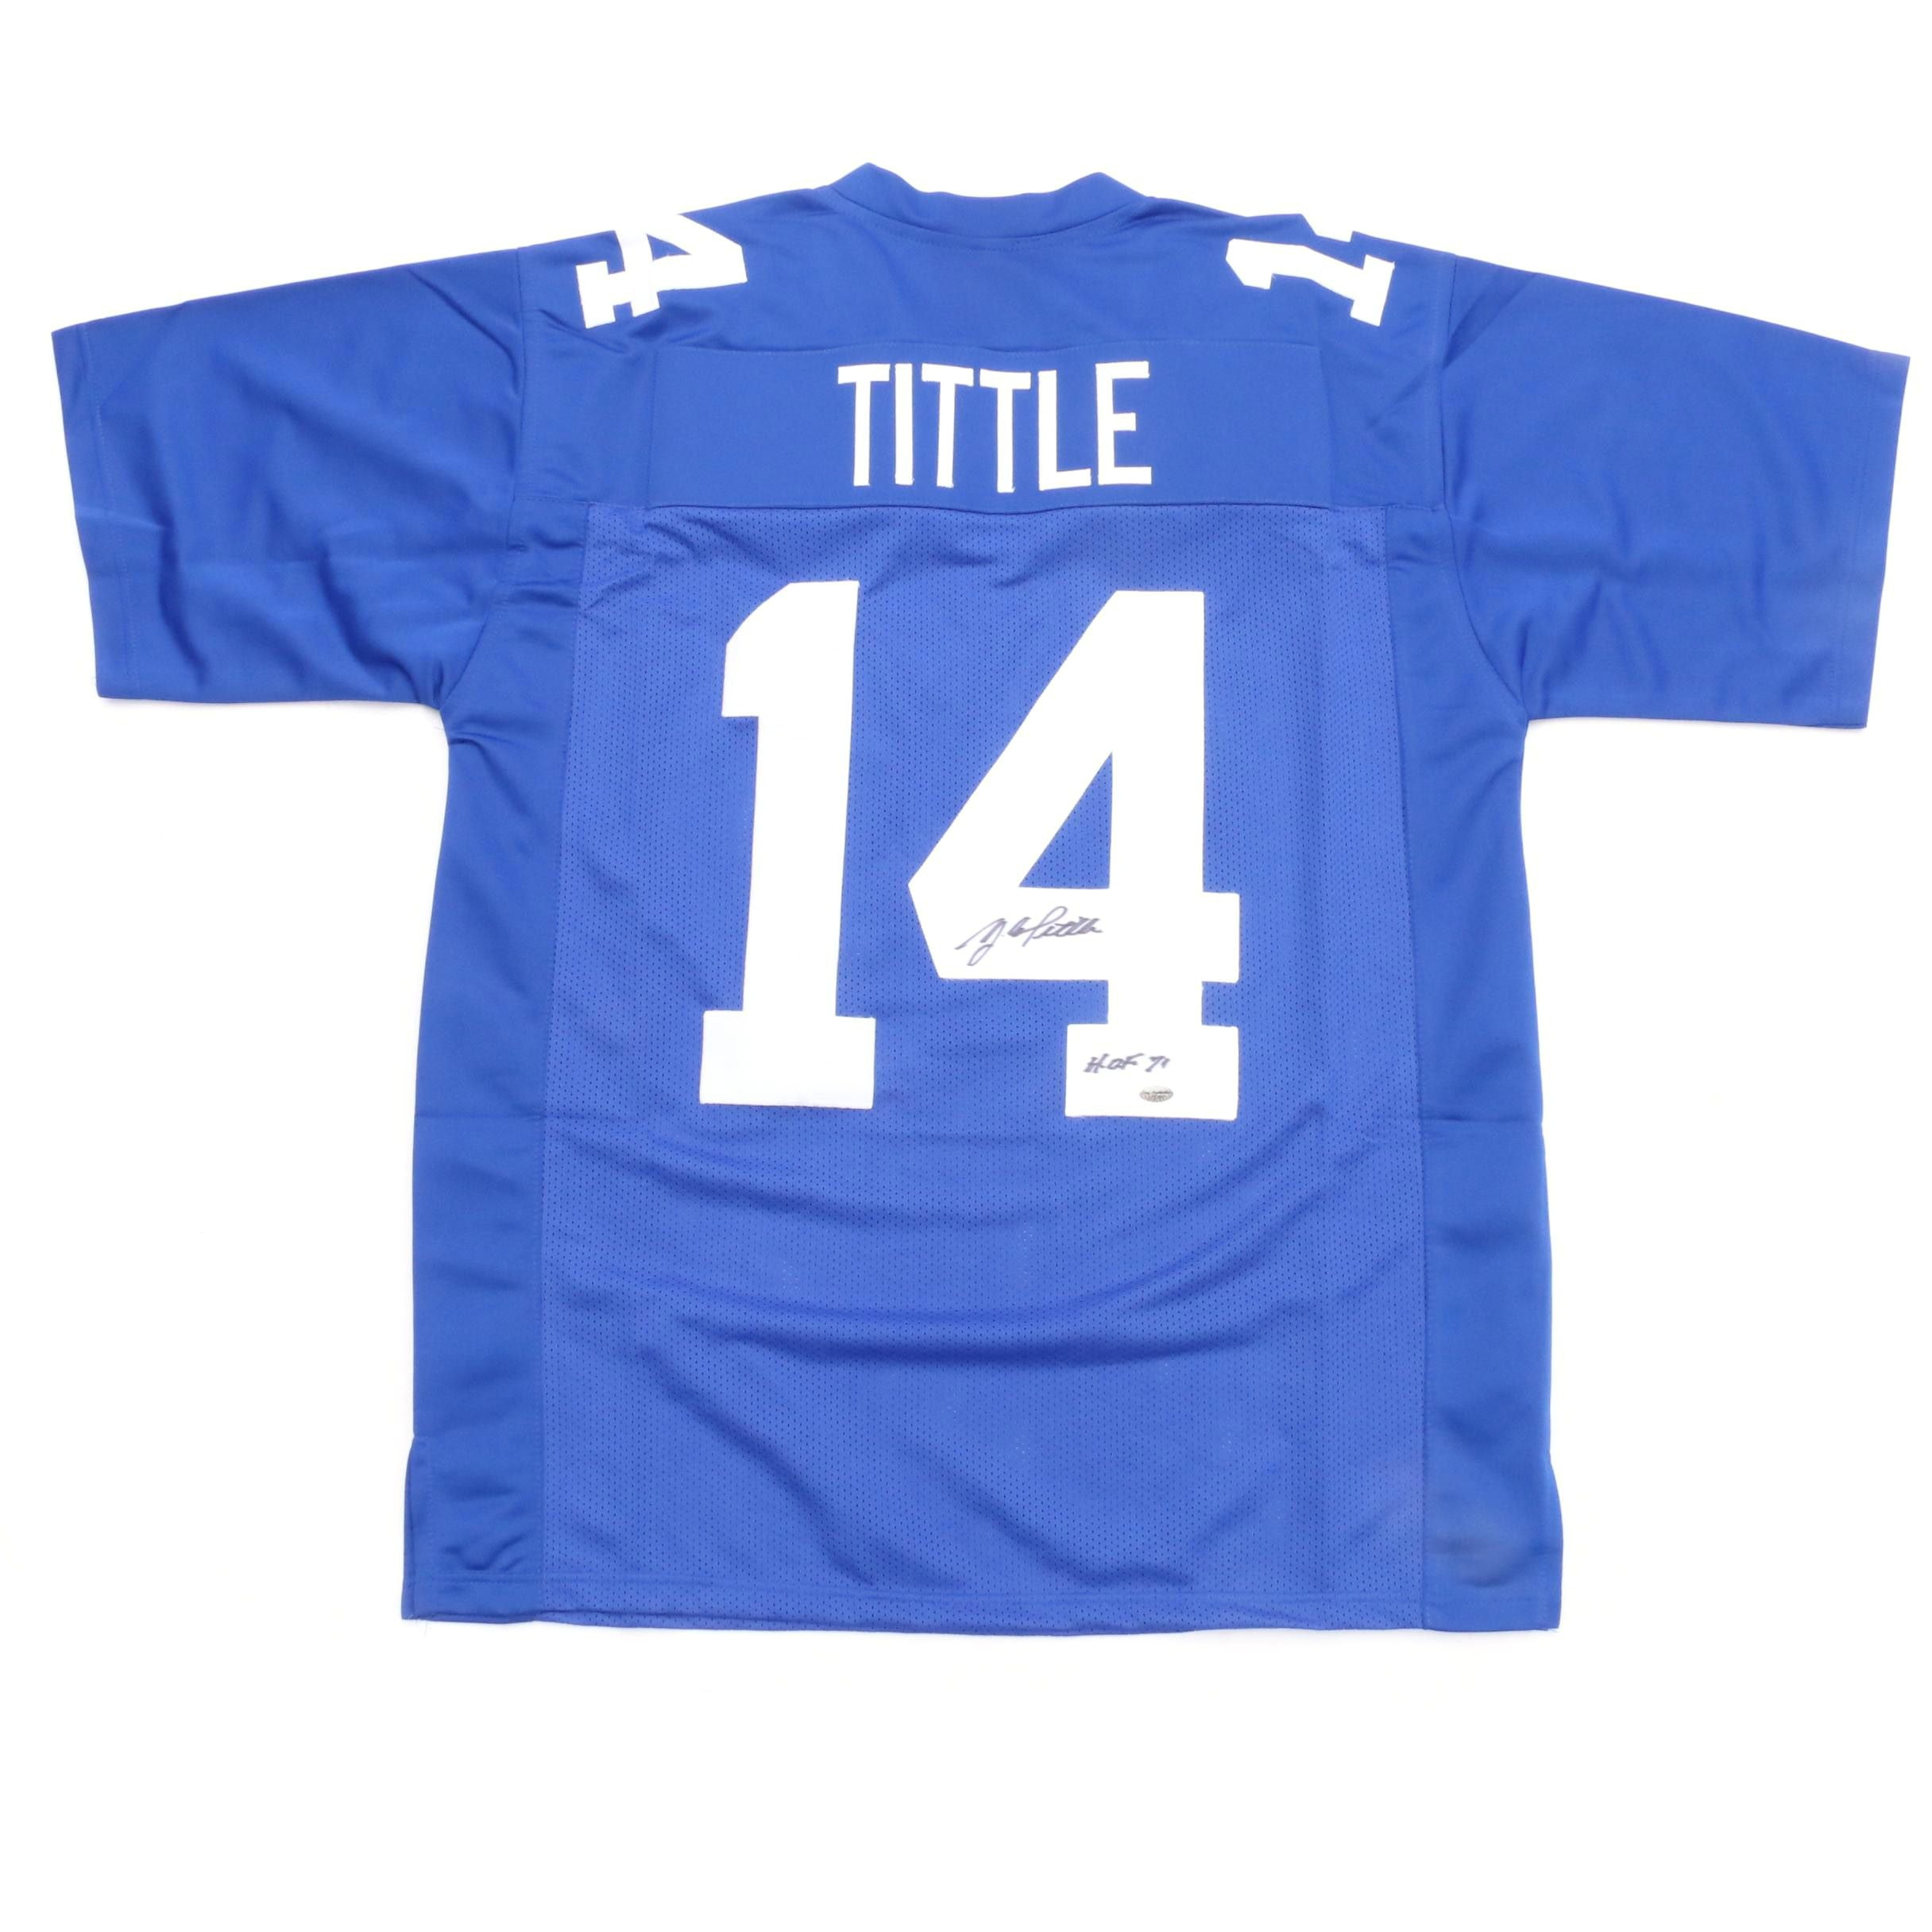 Y.A. Tittle Signed Jersey  COA